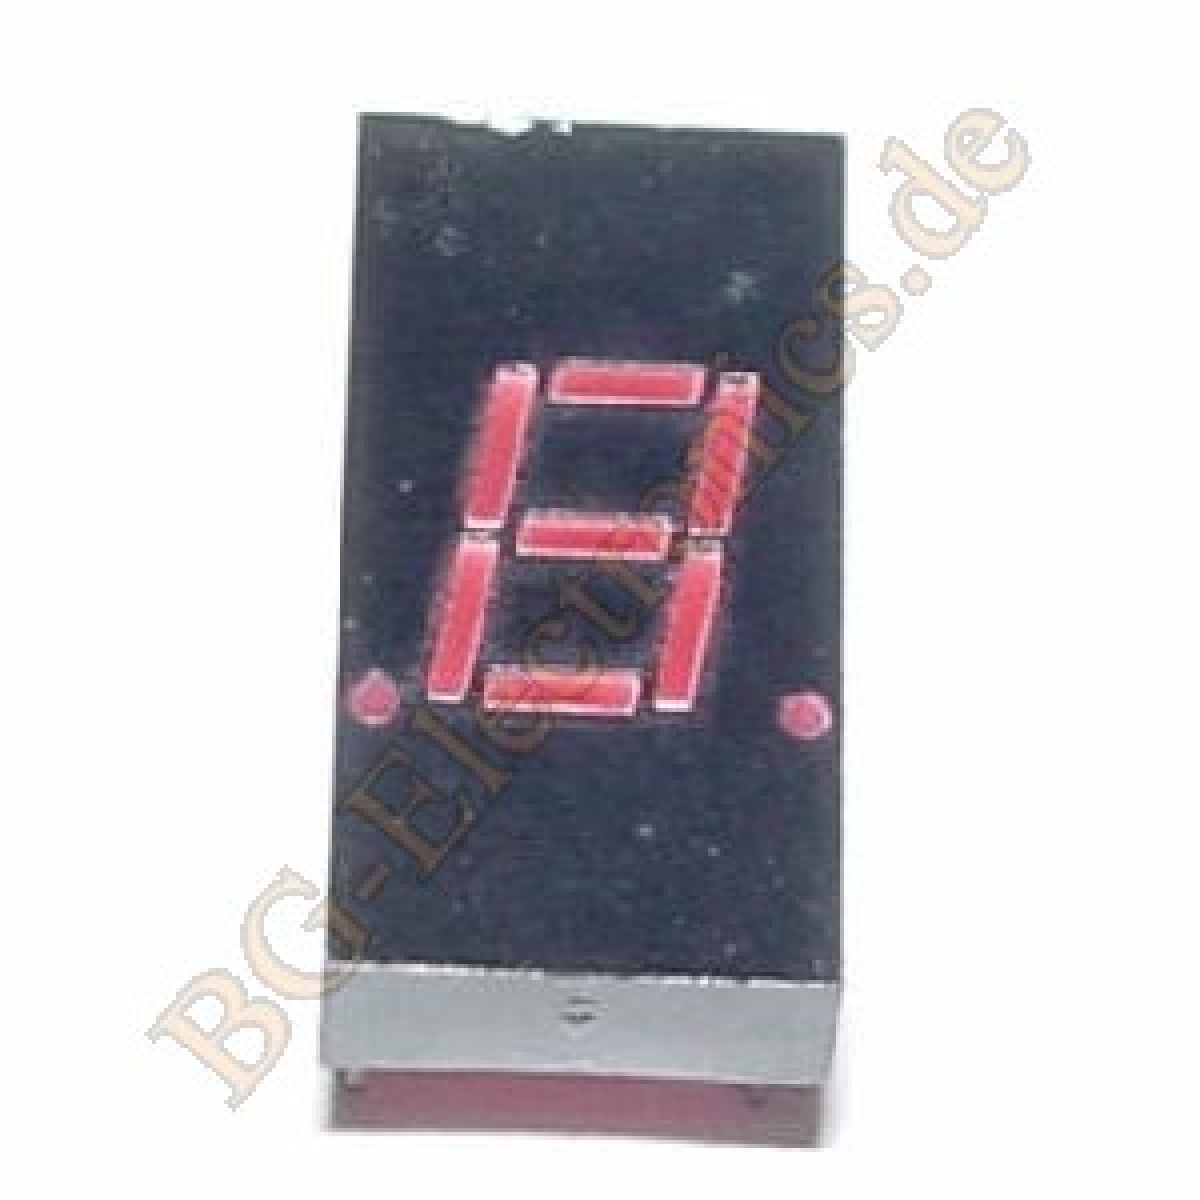 2-x-5082-7730-LED-7-Sieben-Segment-Anzeige-Display-rot-red-7-6-mm-HP-2pcs